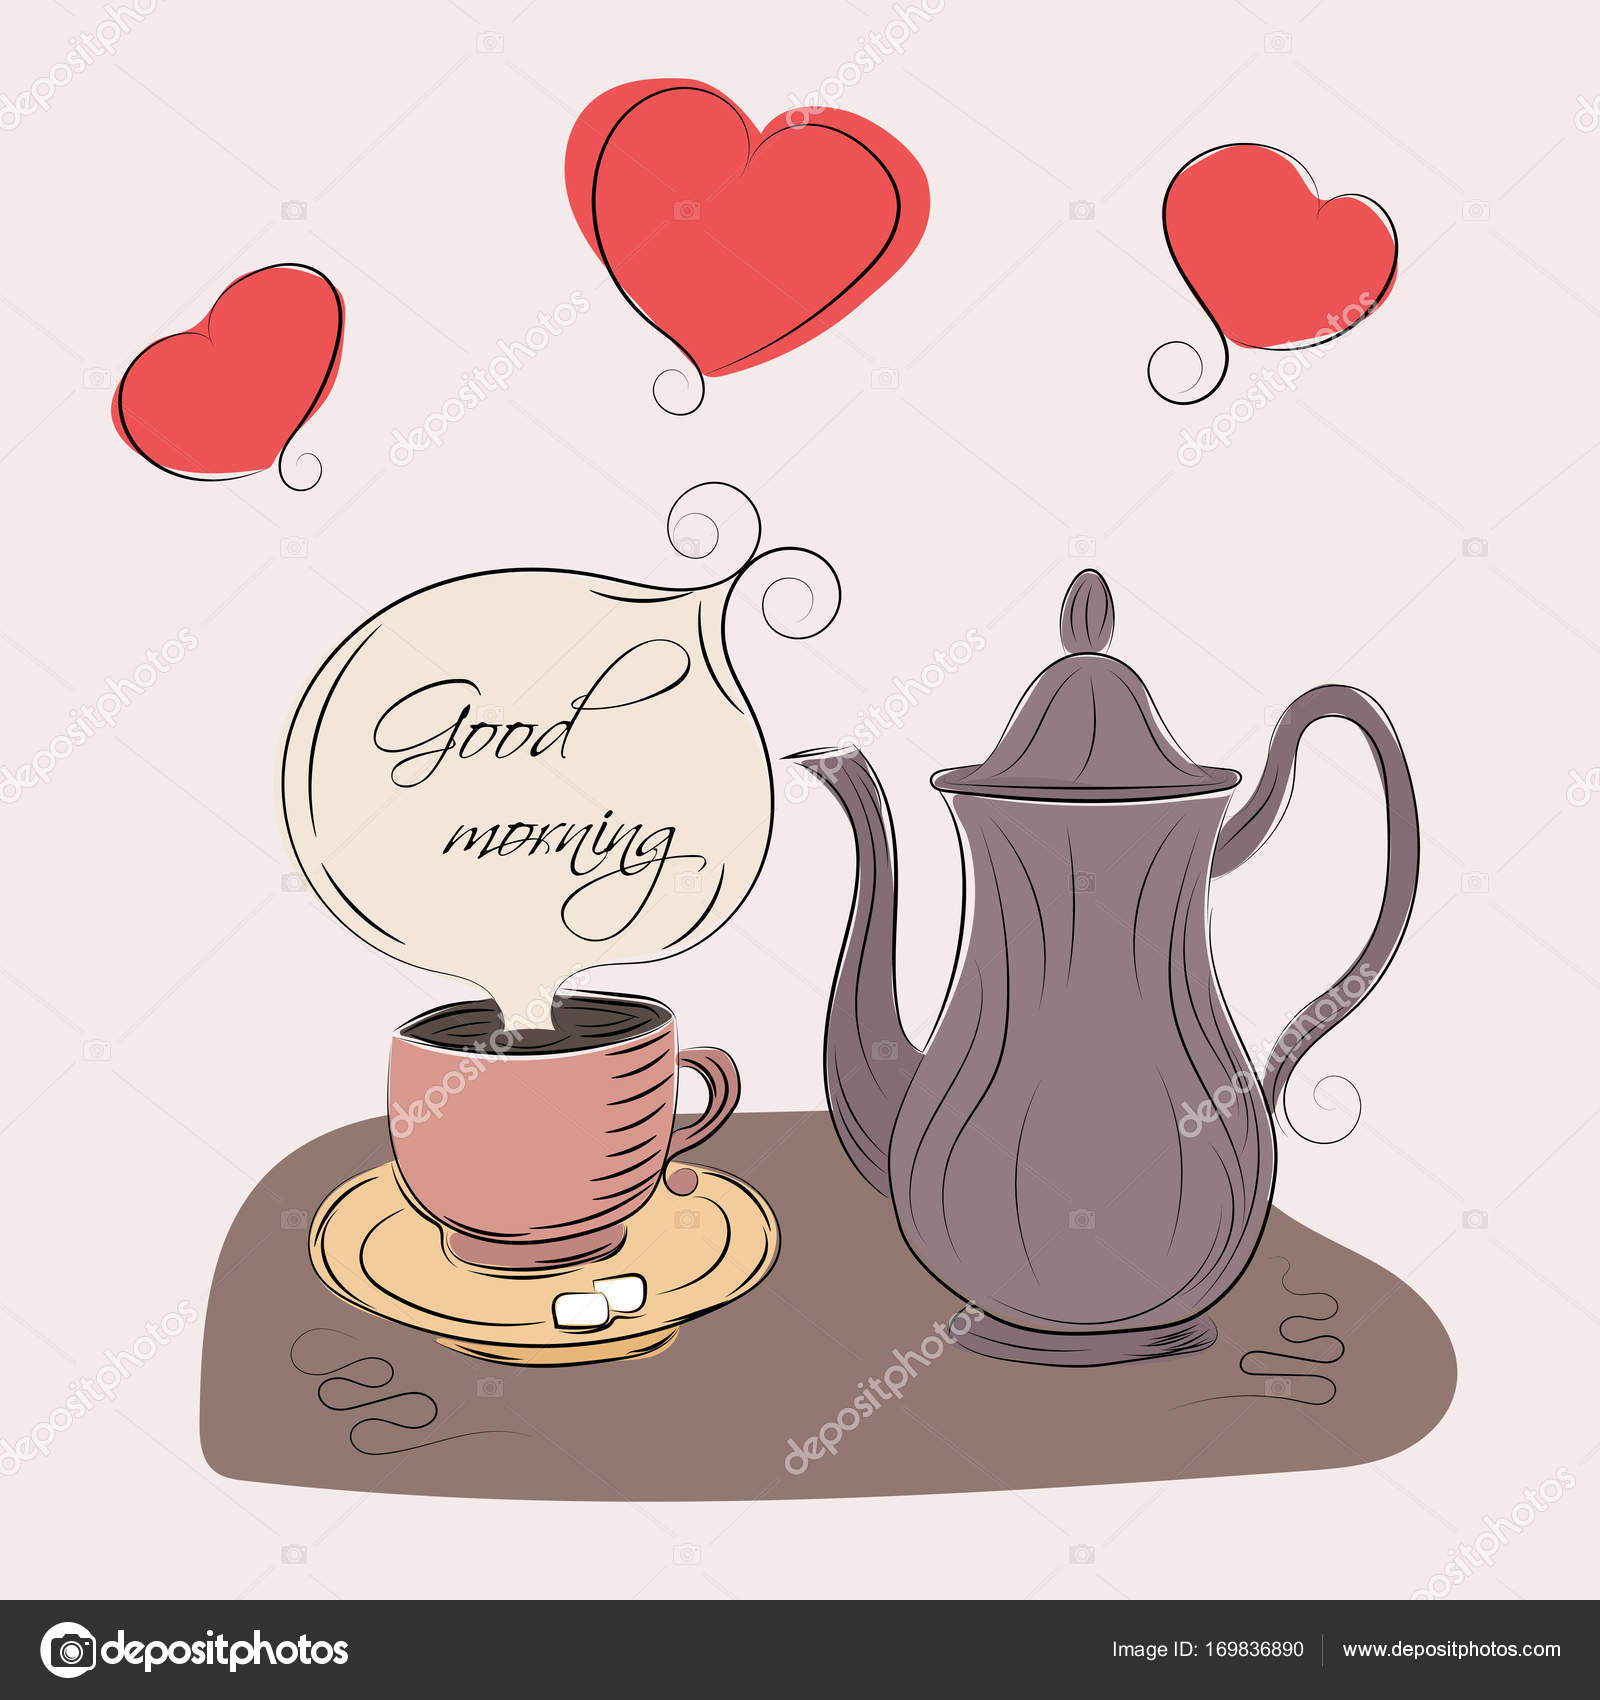 A Coffee Cup And Coffeepot Stock Vector C Polina Niko 169836890